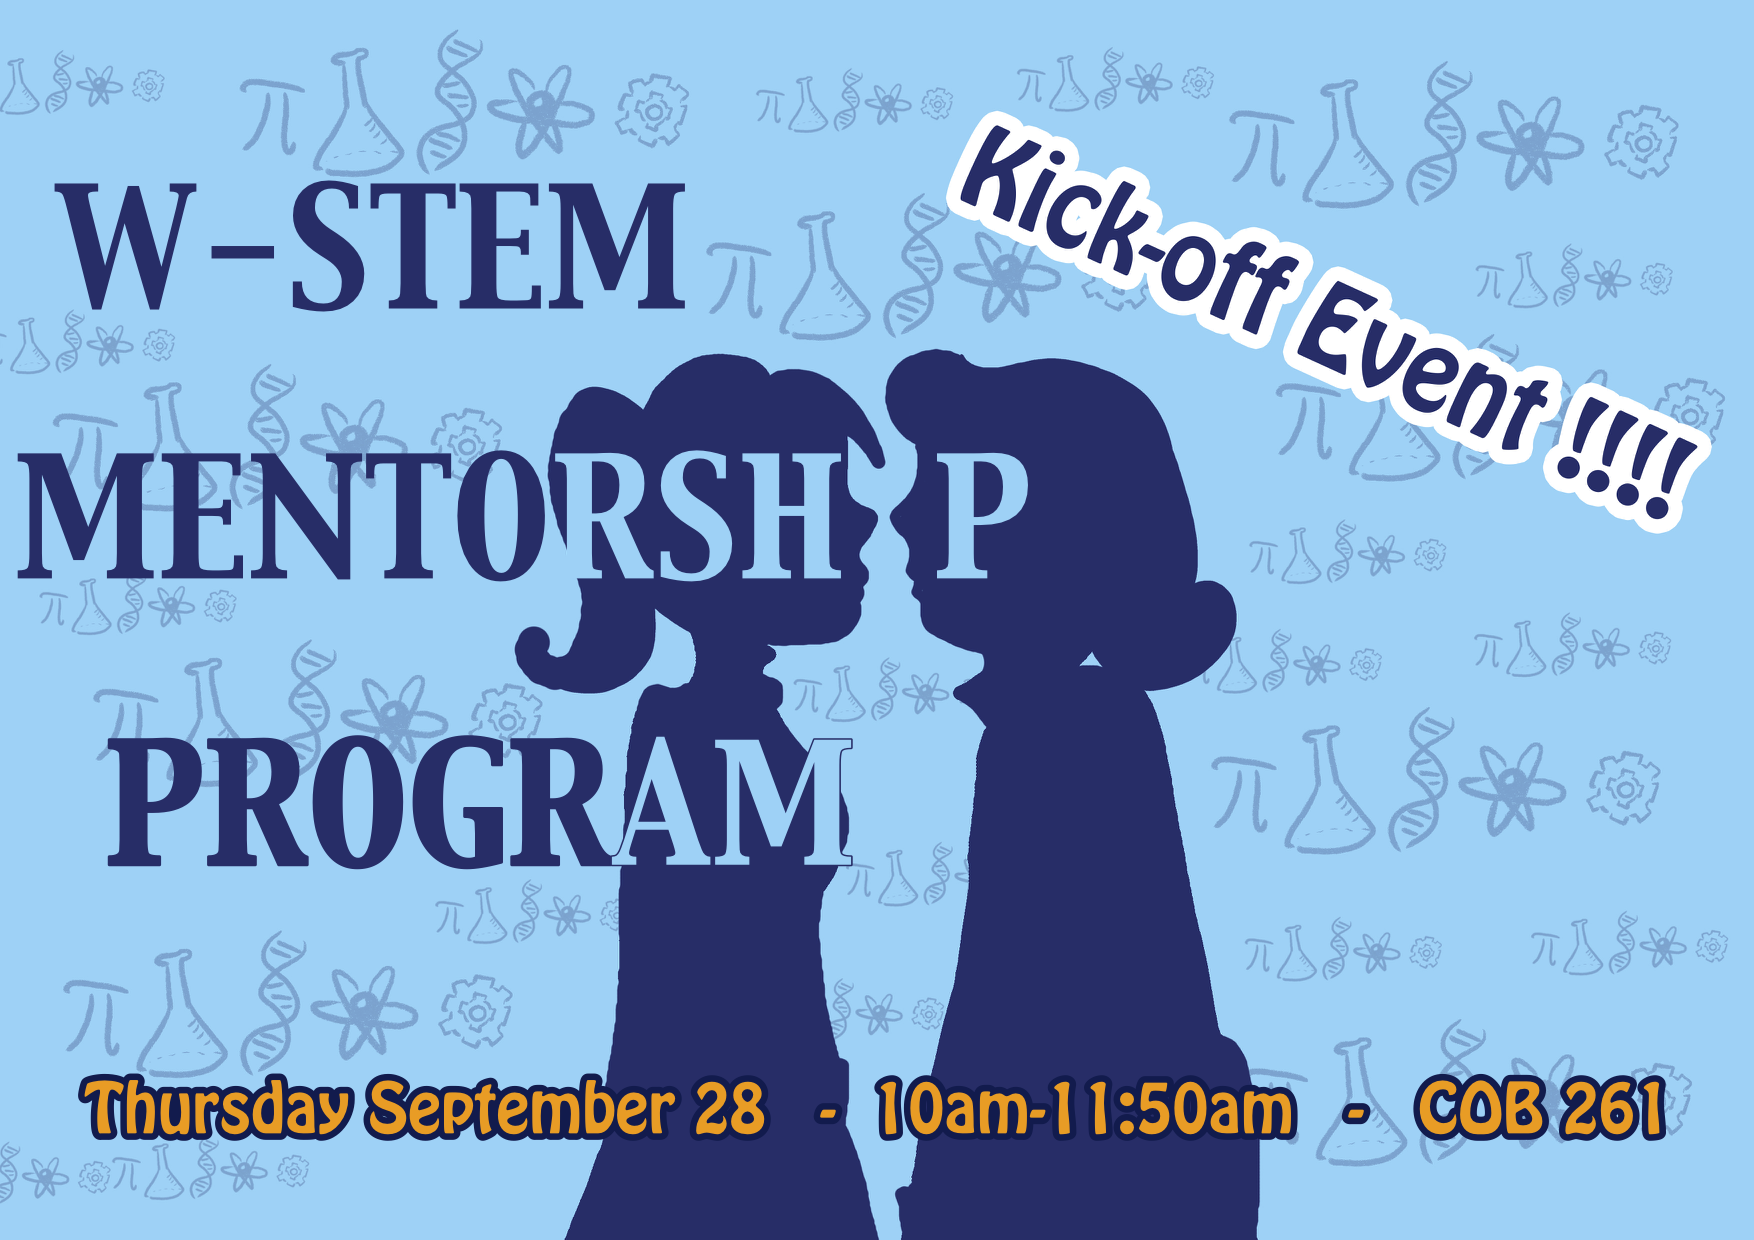 UC Merced W-STEM Mentorship program !